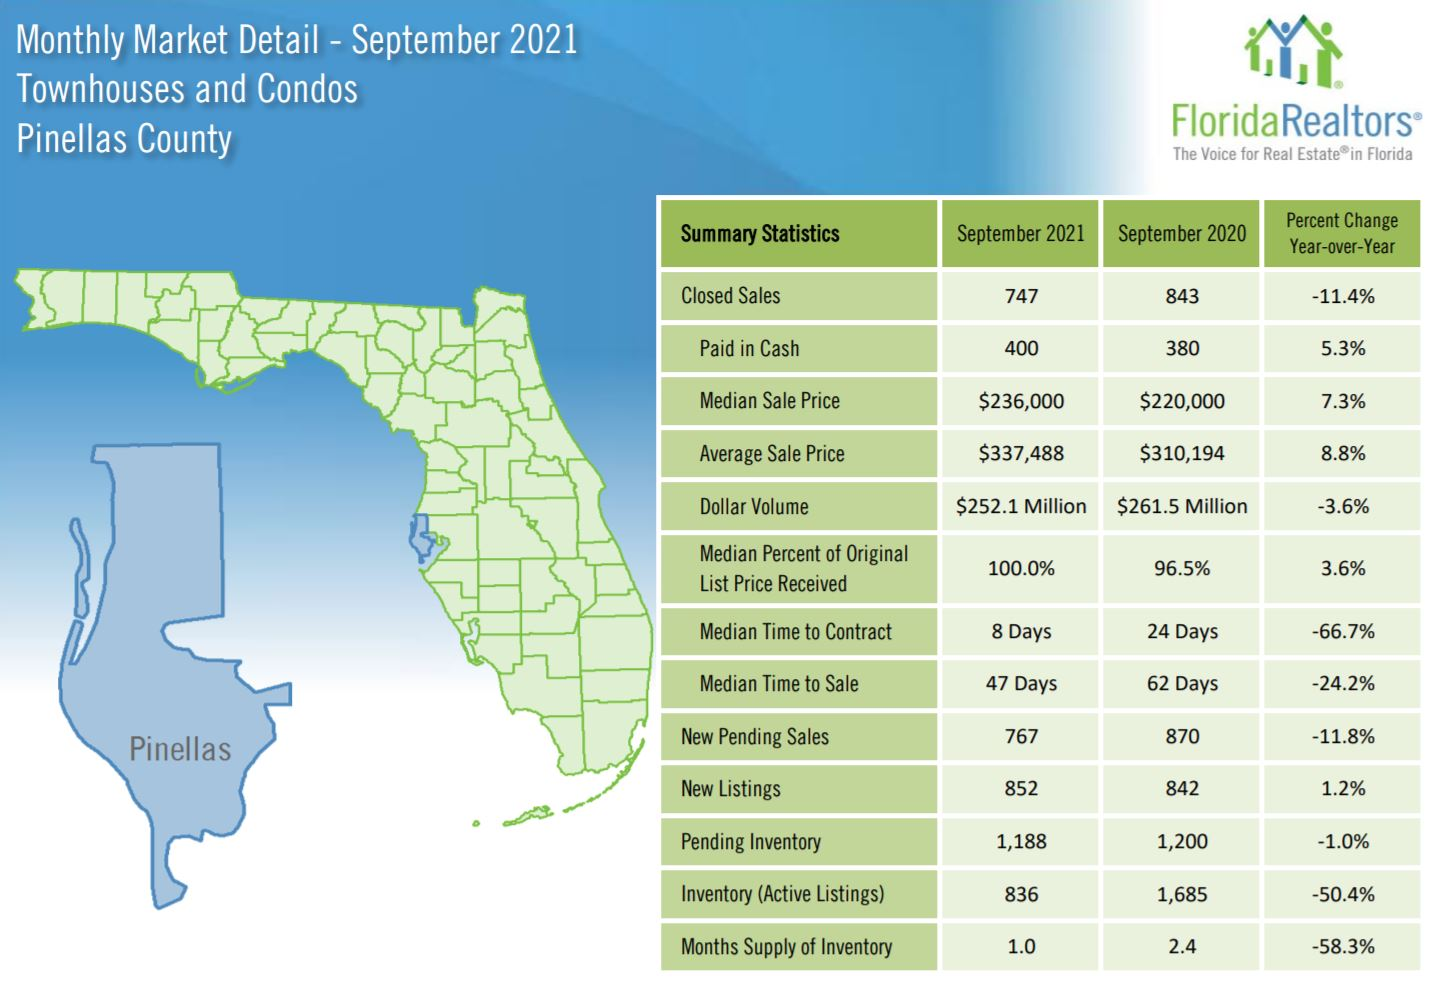 Condo and Townhouse Stats September 2021